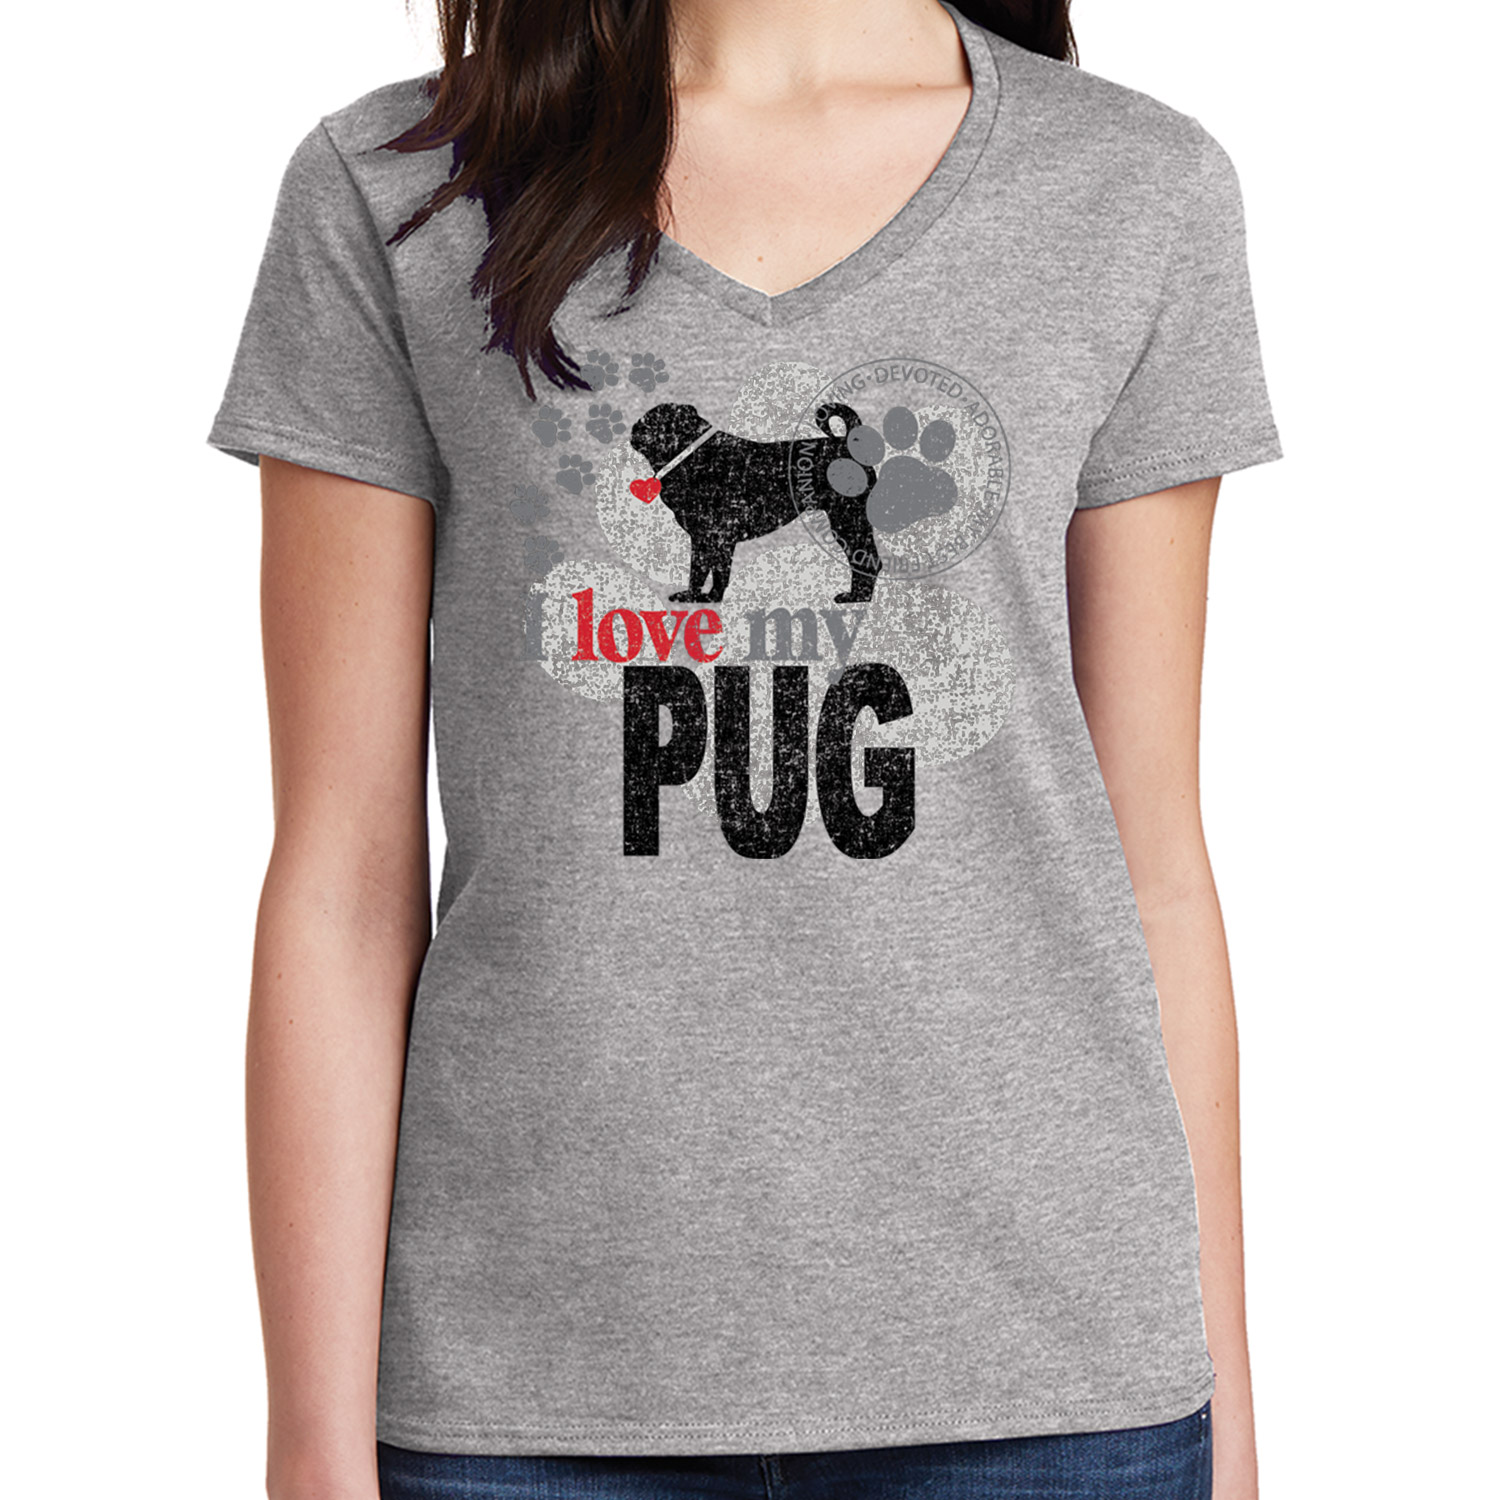 I love my PUG Kid/'s T-shirt Devoted Adorable Dog Tee for Youth 1739C